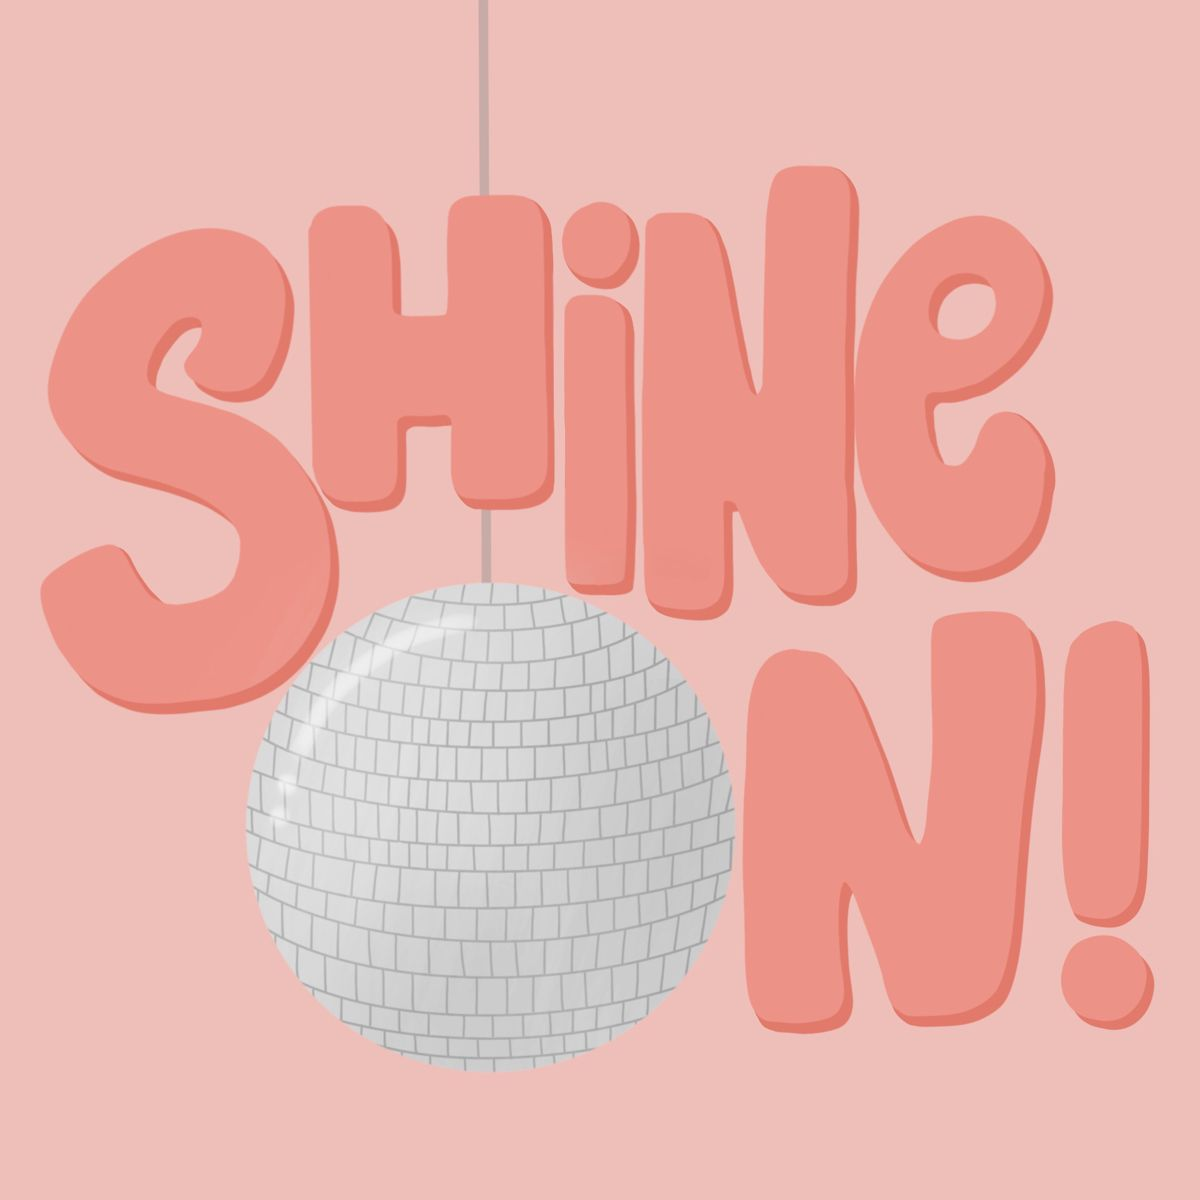 CLARE MITCHELL DESIGNS⭐️ use code: CMDESIGNS10 for 10% off! #discoball #illustration #etsy #etsyshop #etsyseller